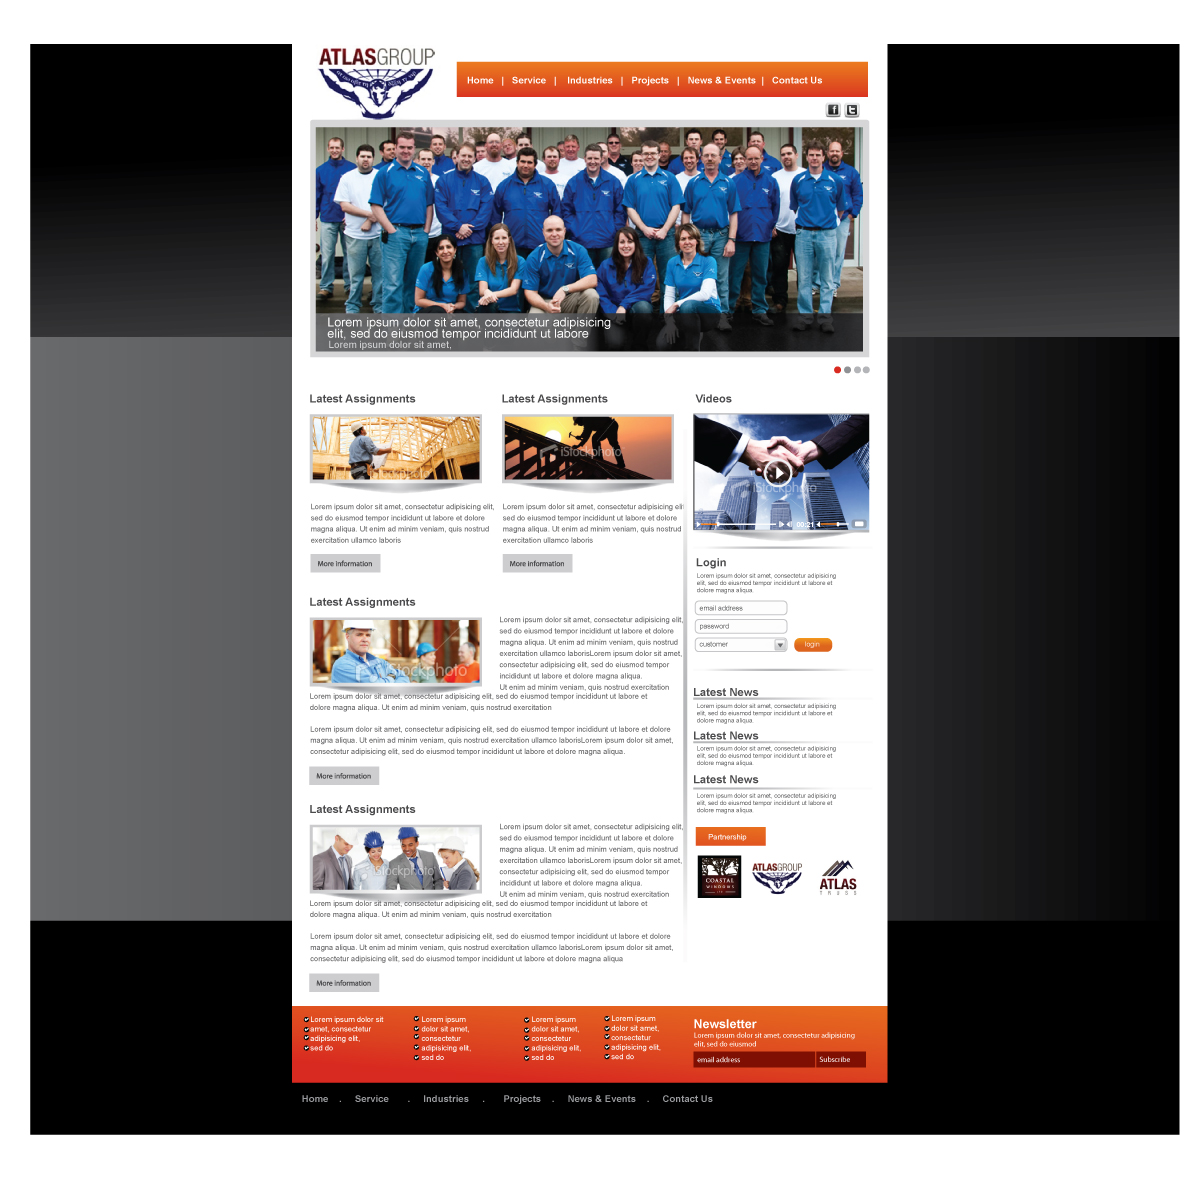 Web Page Design by kreativeFingers - Entry No. 40 in the Web Page Design Contest The Atlas Group Website.